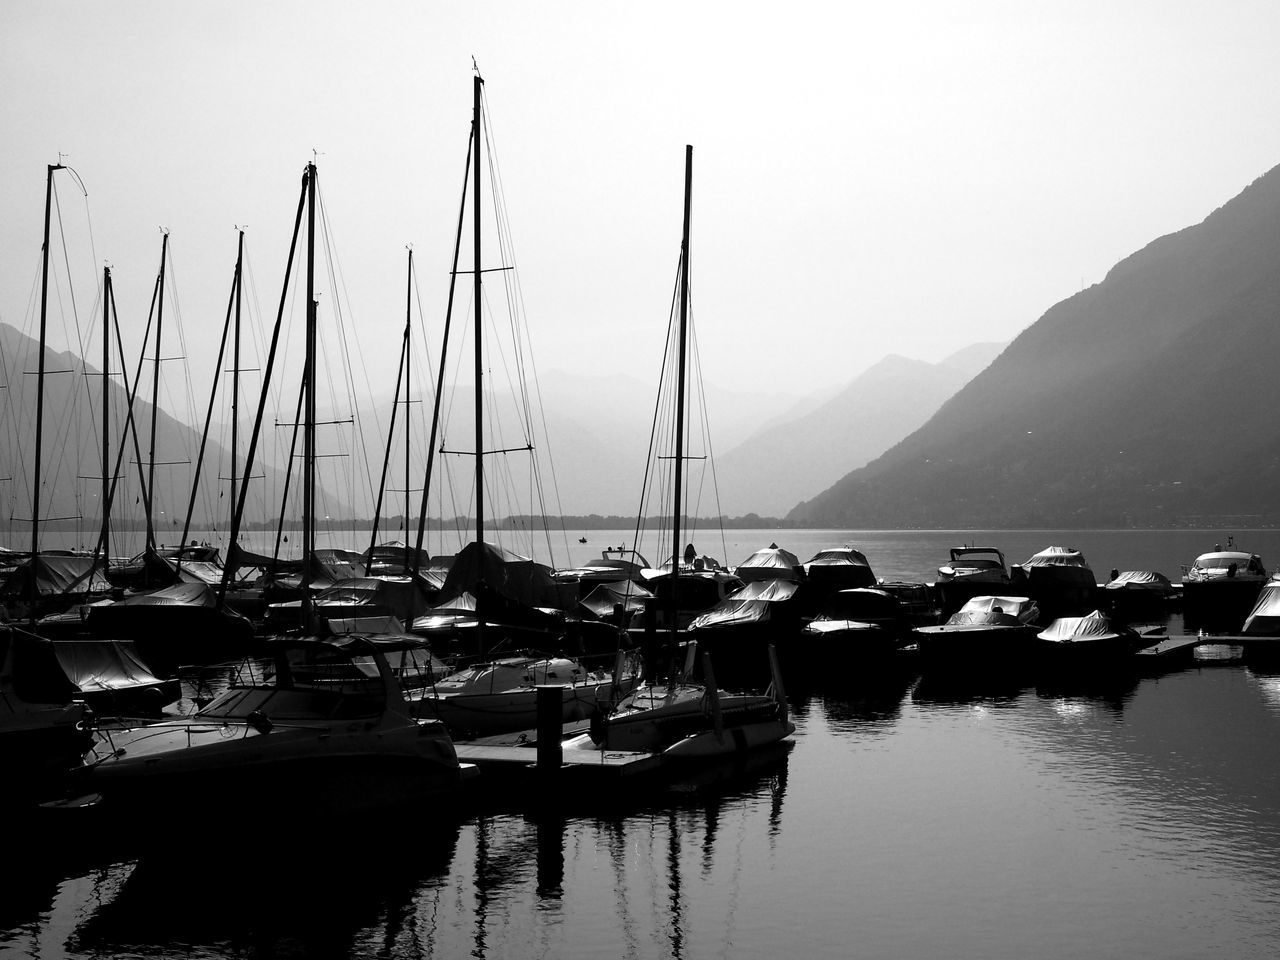 At Porto Patriziale on Lago Maggiore in Ascona, Ticino, Switzerland Alps Beauty In Nature Blackandwhite Bnw Clear Sky Day Harbor In A Row Lake Mast Mode Of Transport Moored Mountain Nature Nautical Vessel No People Outdoors Scenics Sky Switzerland Ticino Tranquility Transportation Water